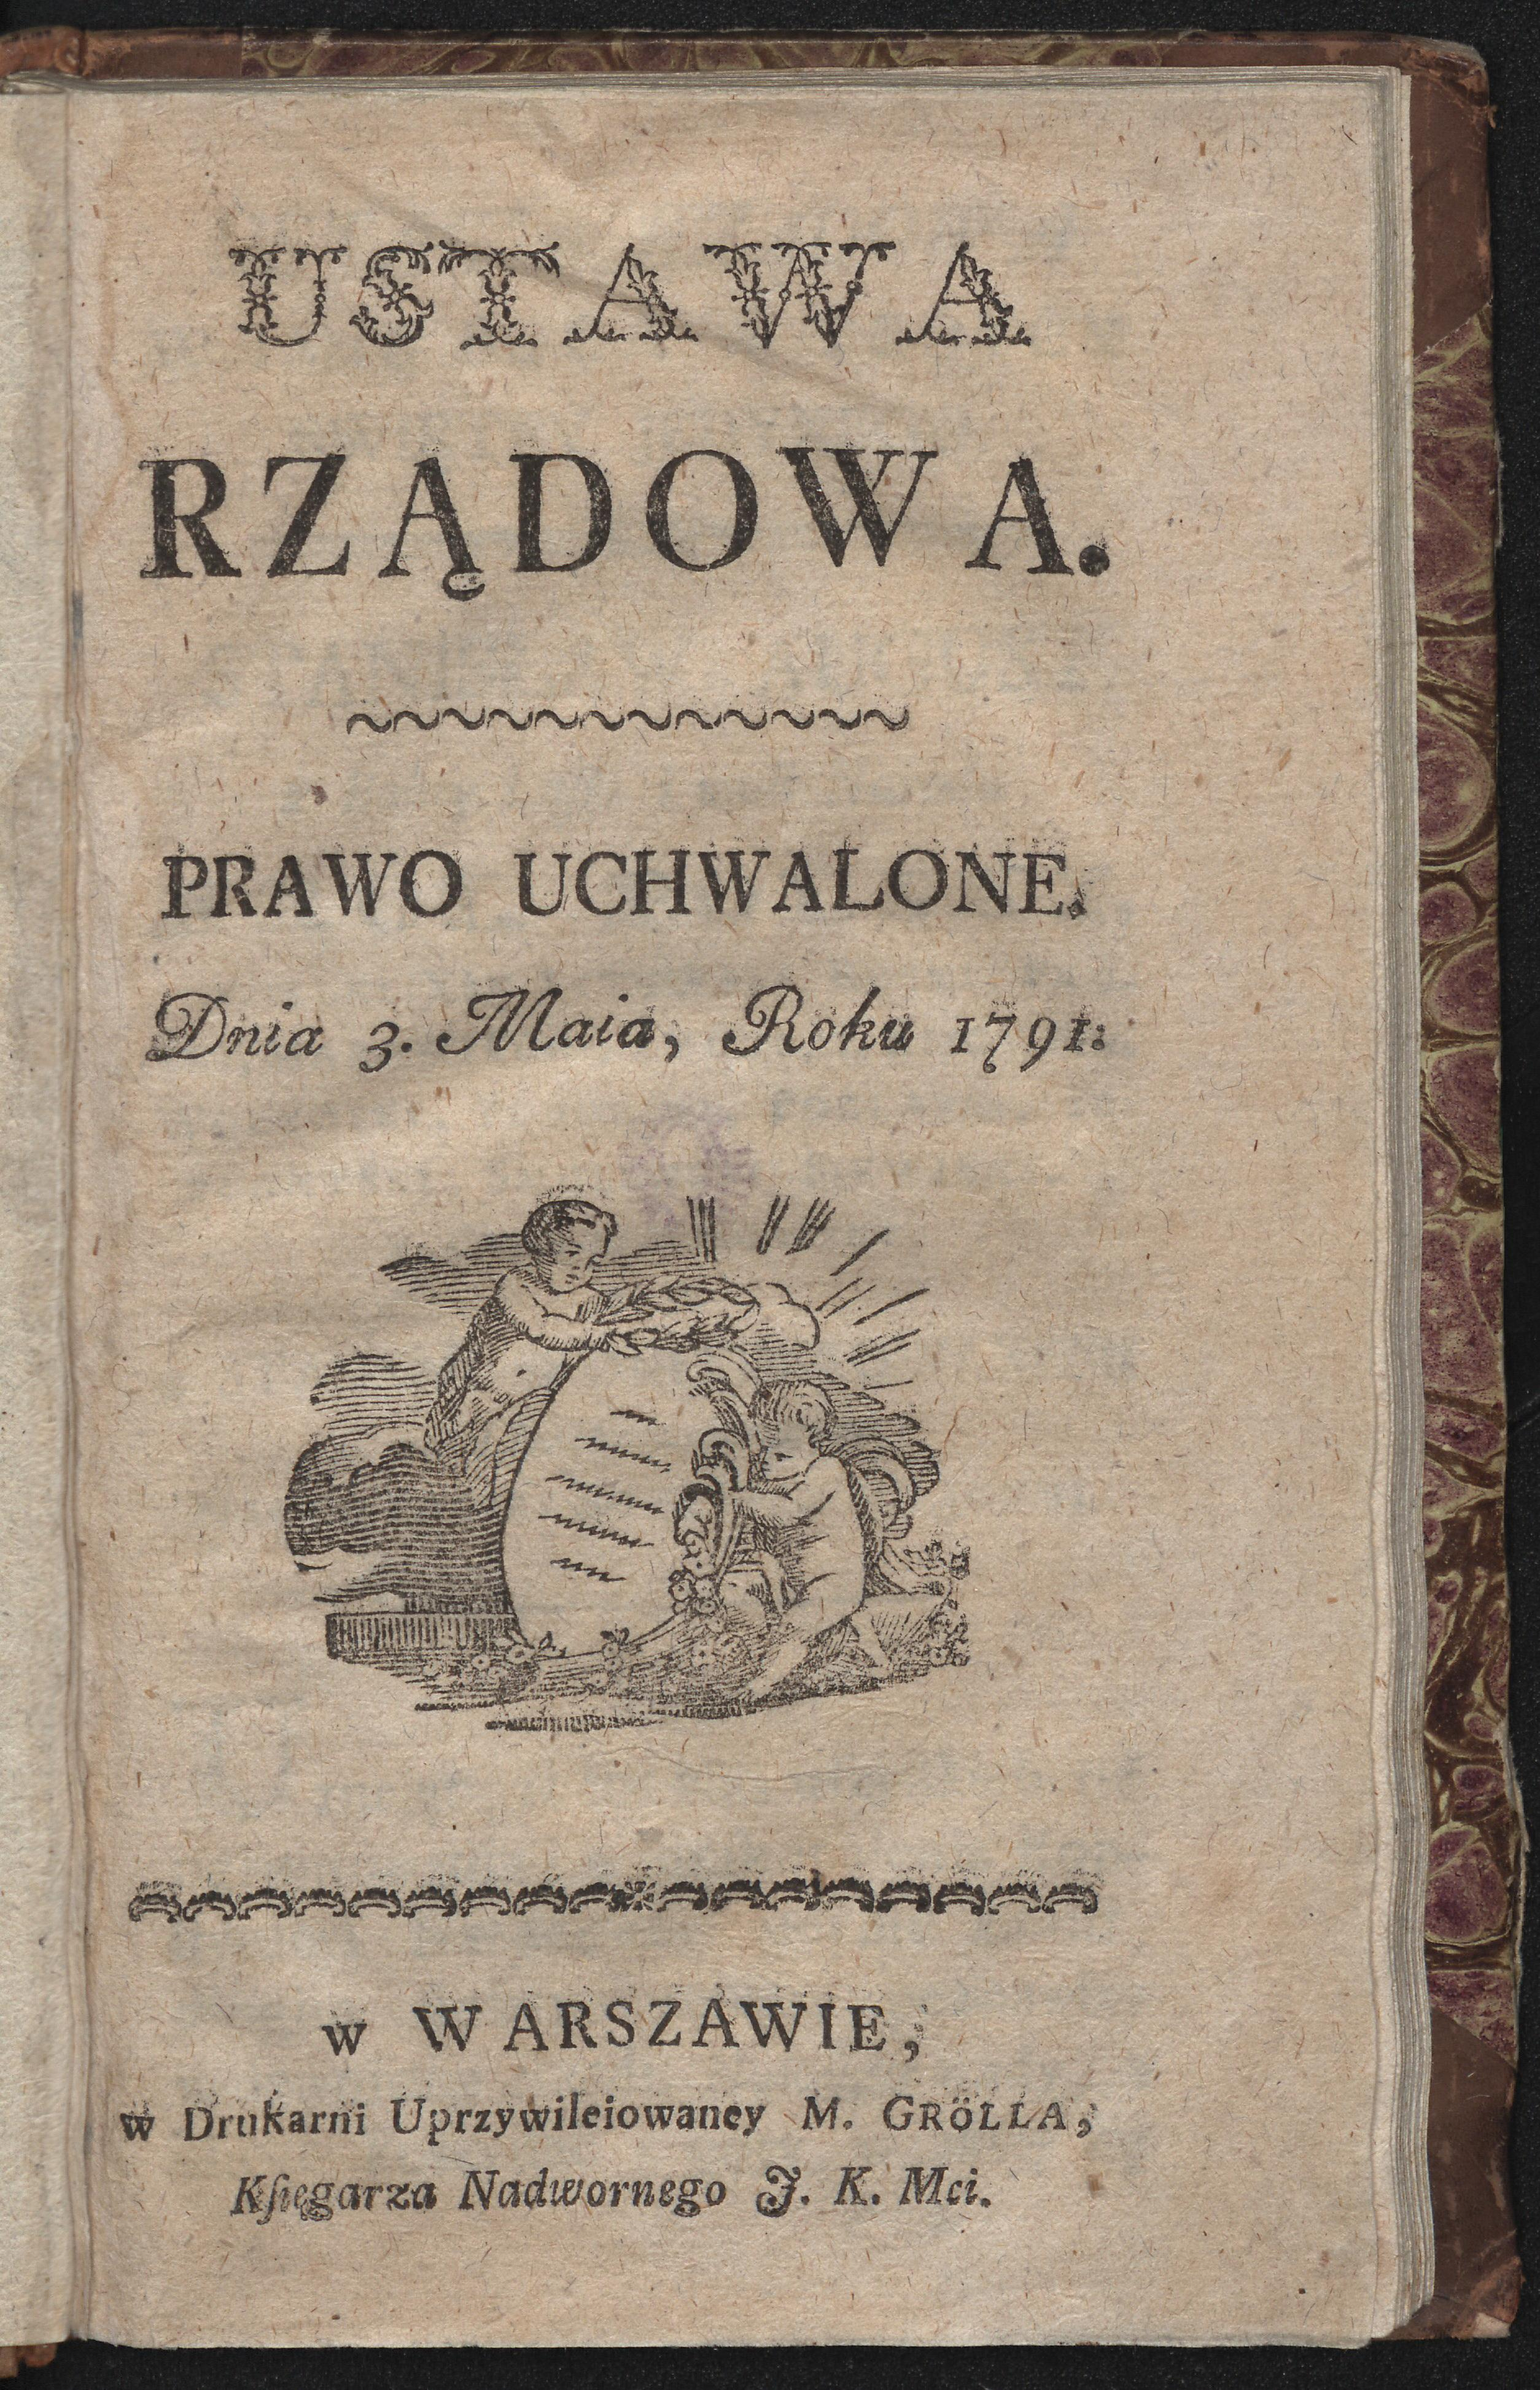 https://upload.wikimedia.org/wikipedia/commons/5/5f/Constitution_of_the_3rd_May_1791_-_print_in_Warszawa_-_Michal_Groll_-_1791_AD.jpg